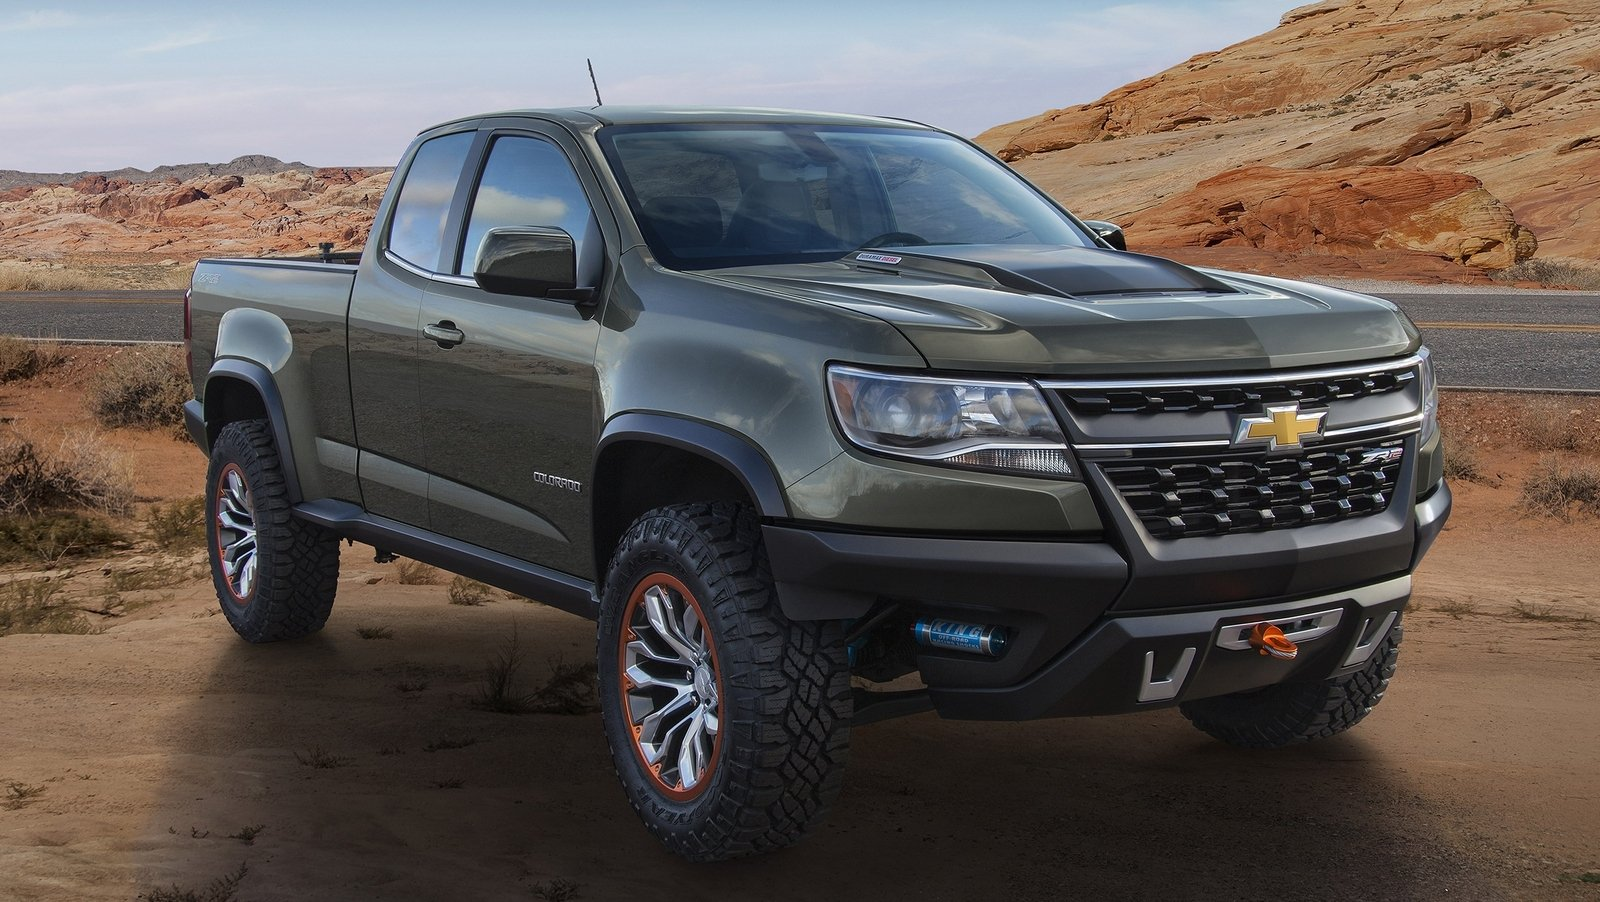 Chevrolet Trailblazer F Ns furthermore R Na also Chevy Colorado besides Related Pictures in addition Dsc. on 2014 chevy colorado z71